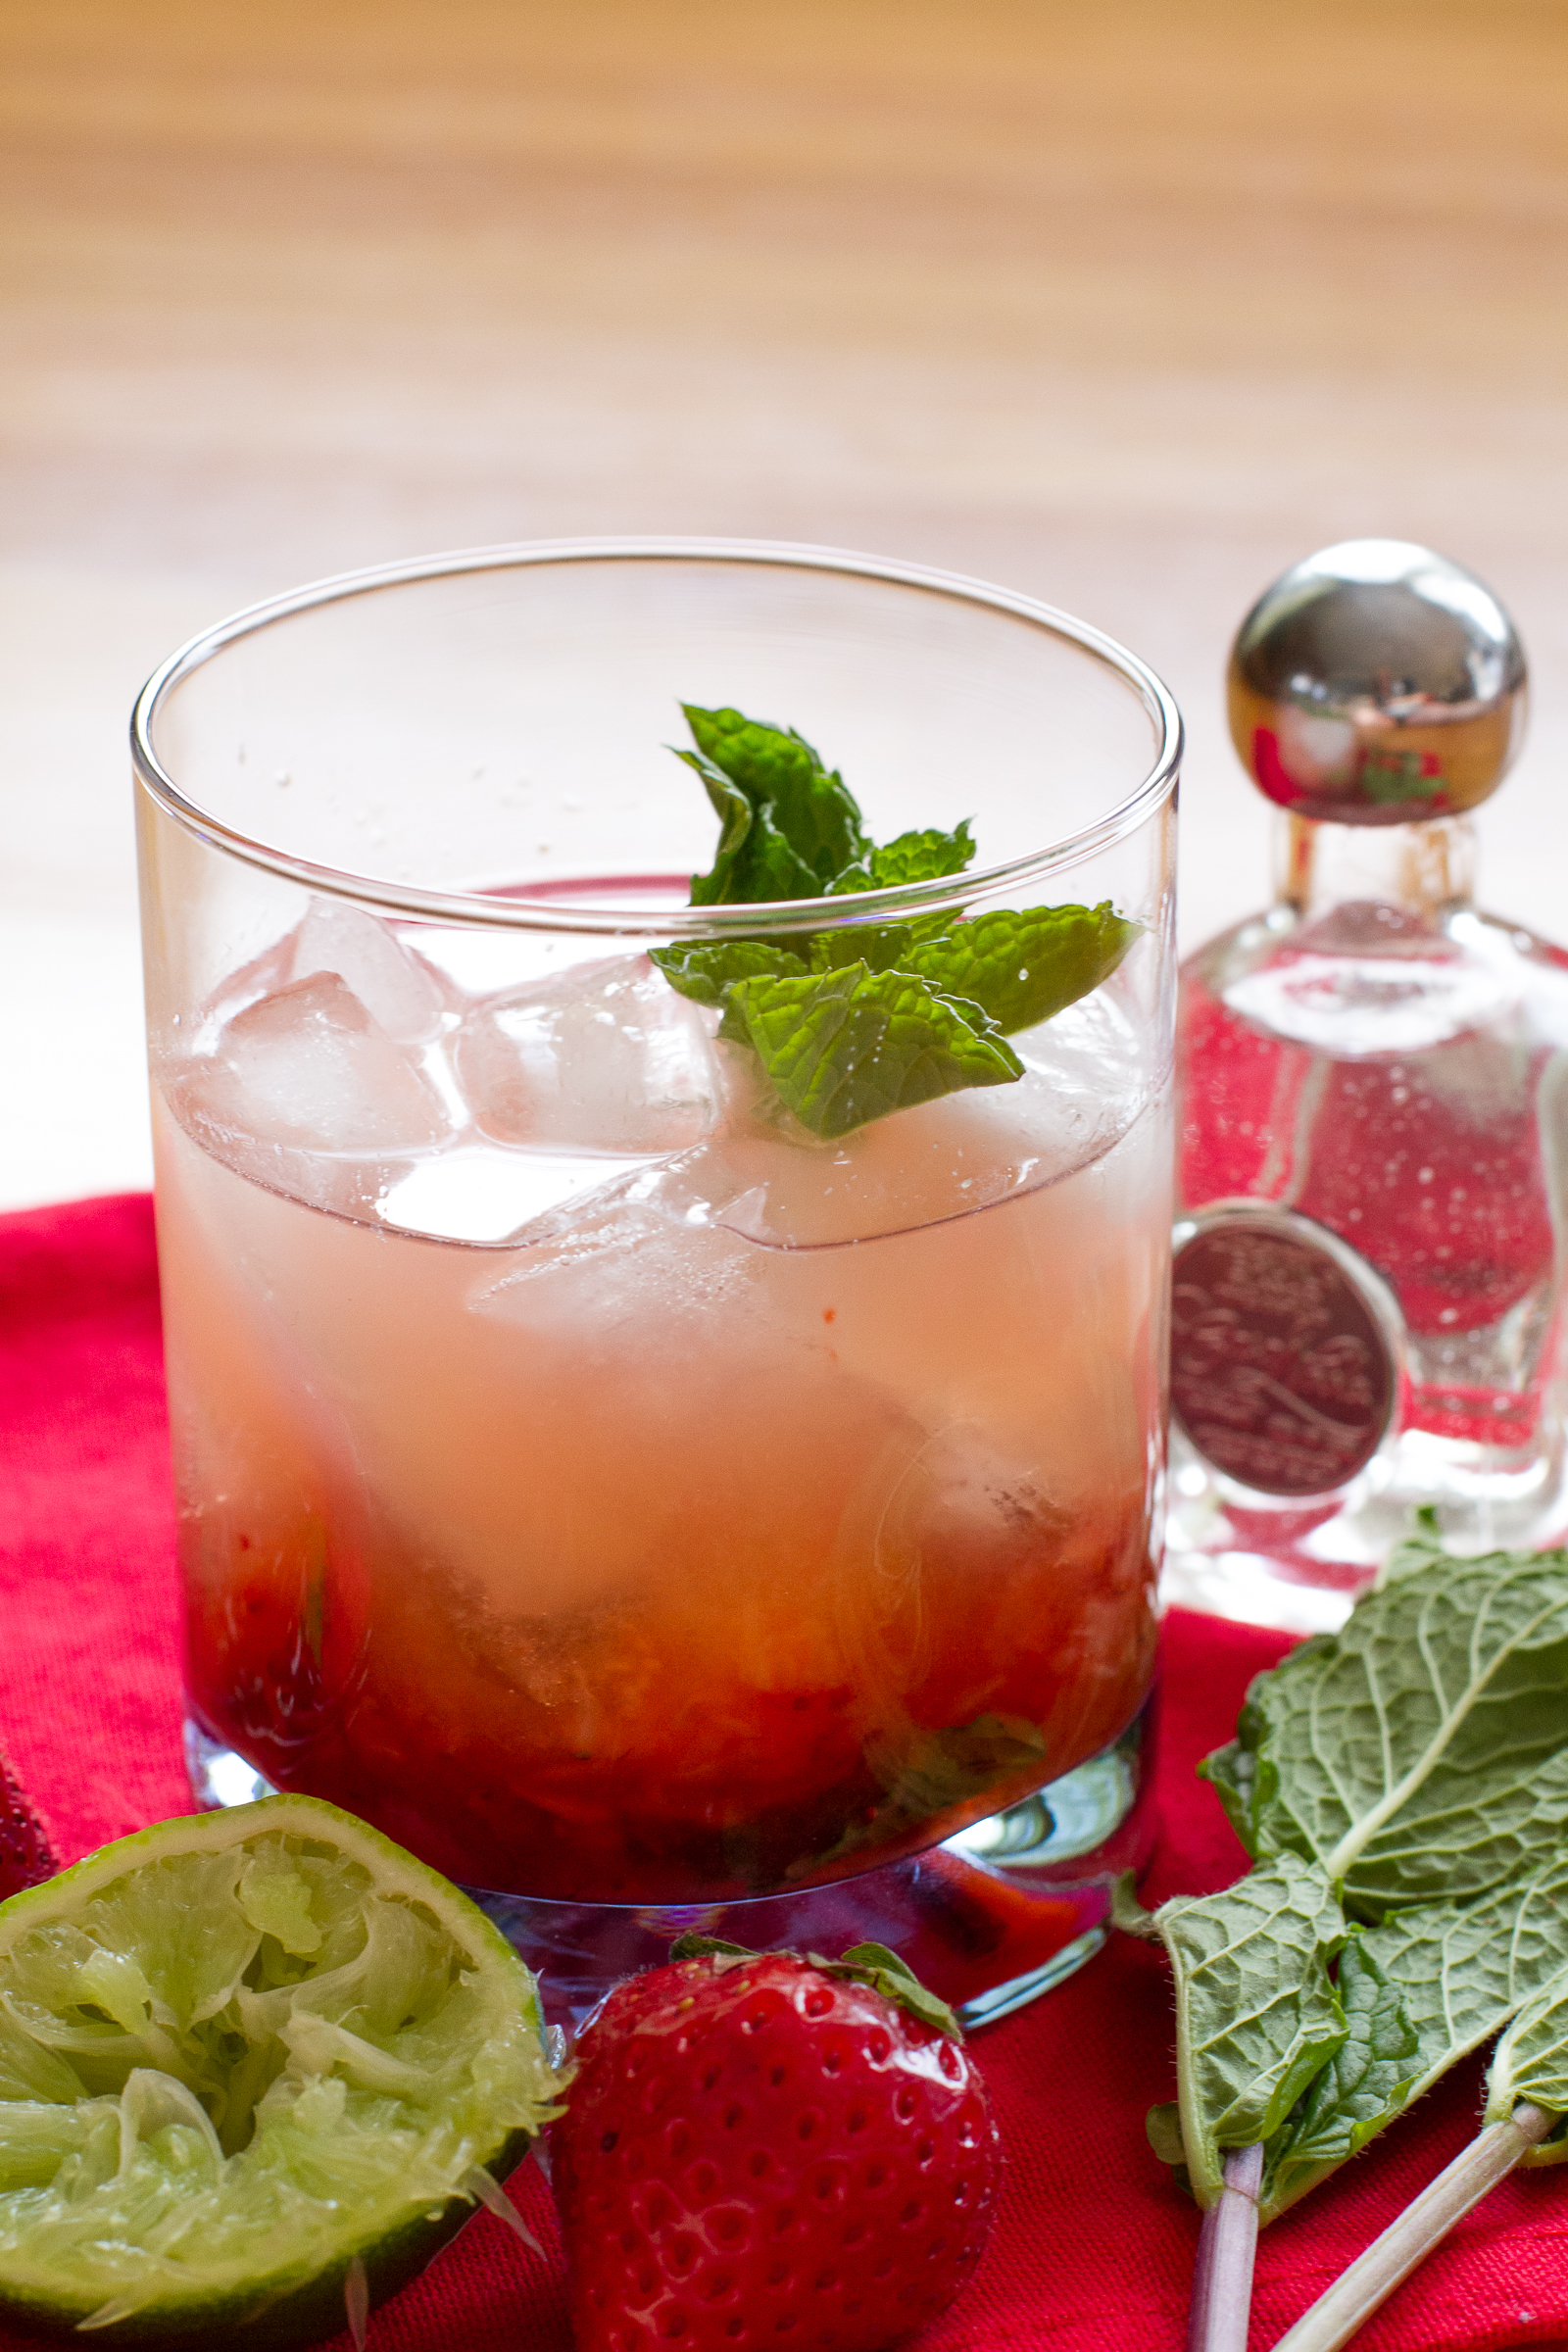 Strawberry Mint Tequila Smash Cocktail for Earth Day #client